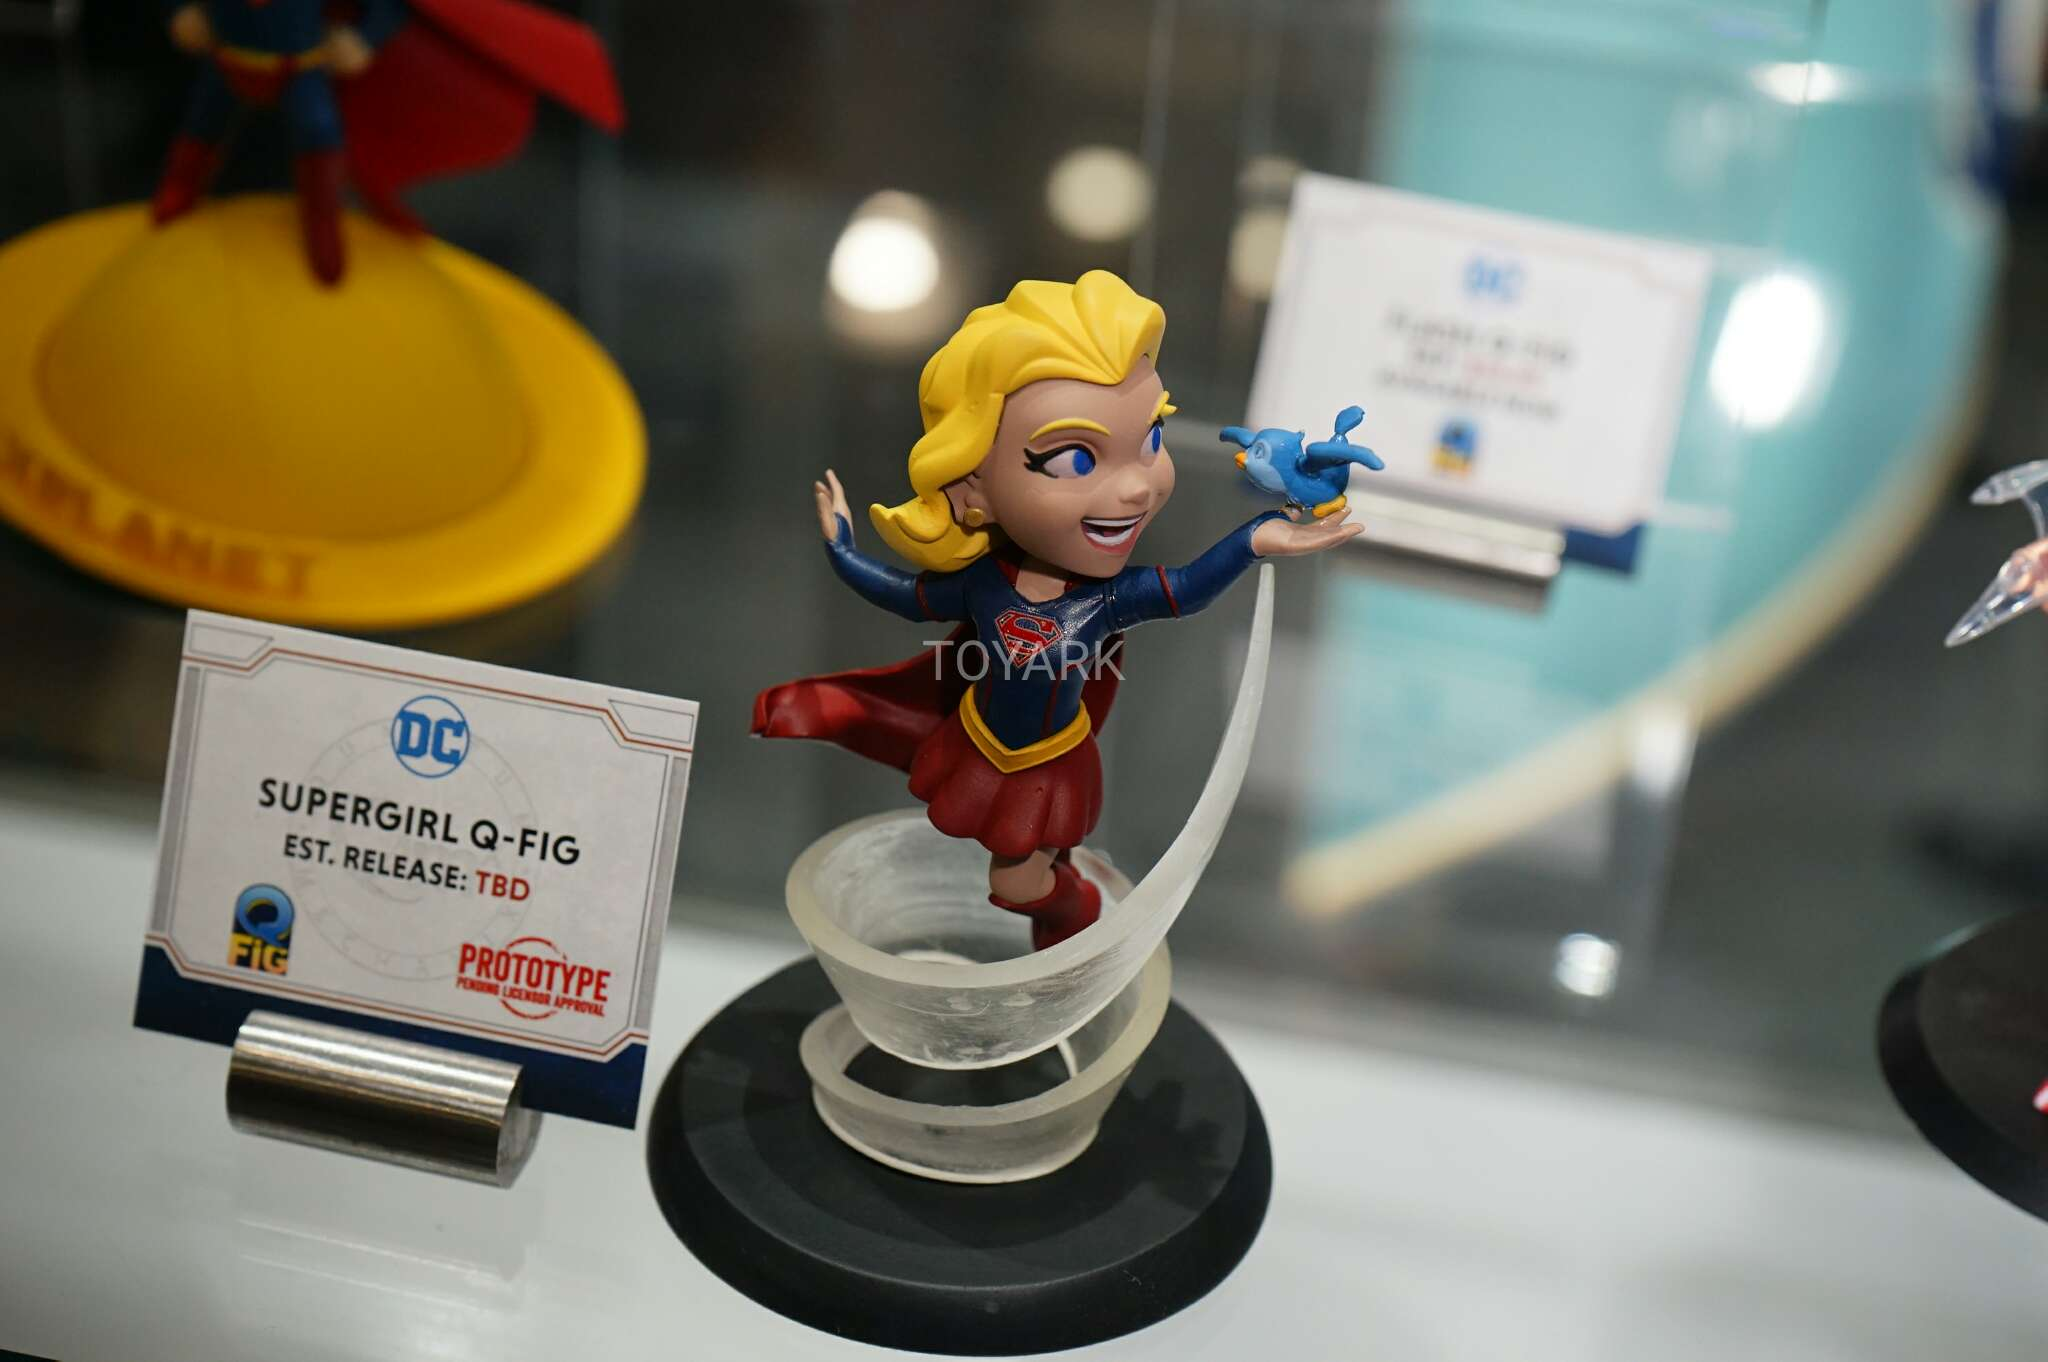 http://news.toyark.com/wp-content/uploads/sites/4/2017/02/Toy-Fair-2017-QMX-066.jpg